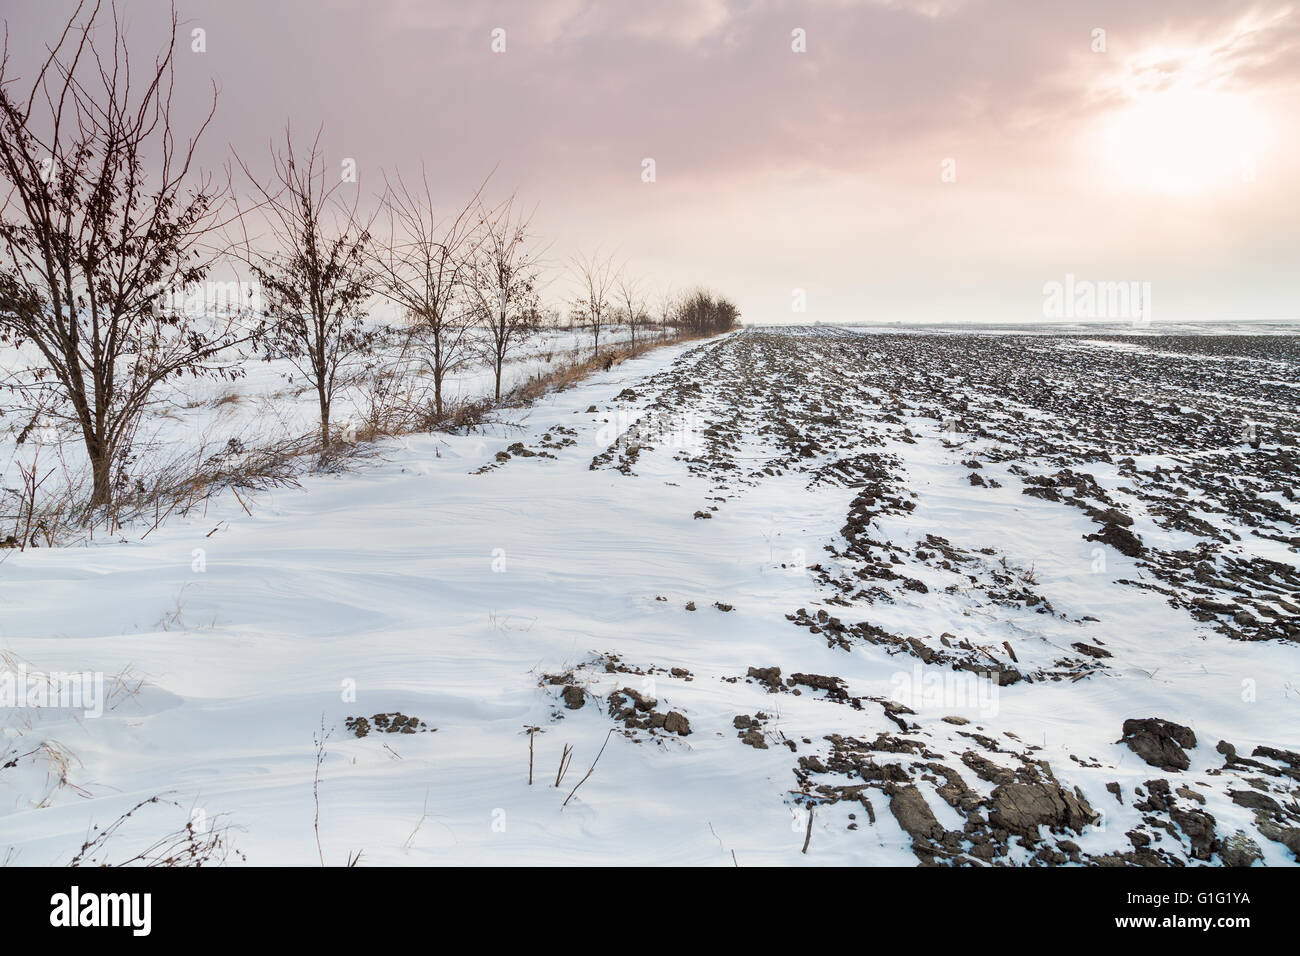 Arable land covered in snow - Stock Image